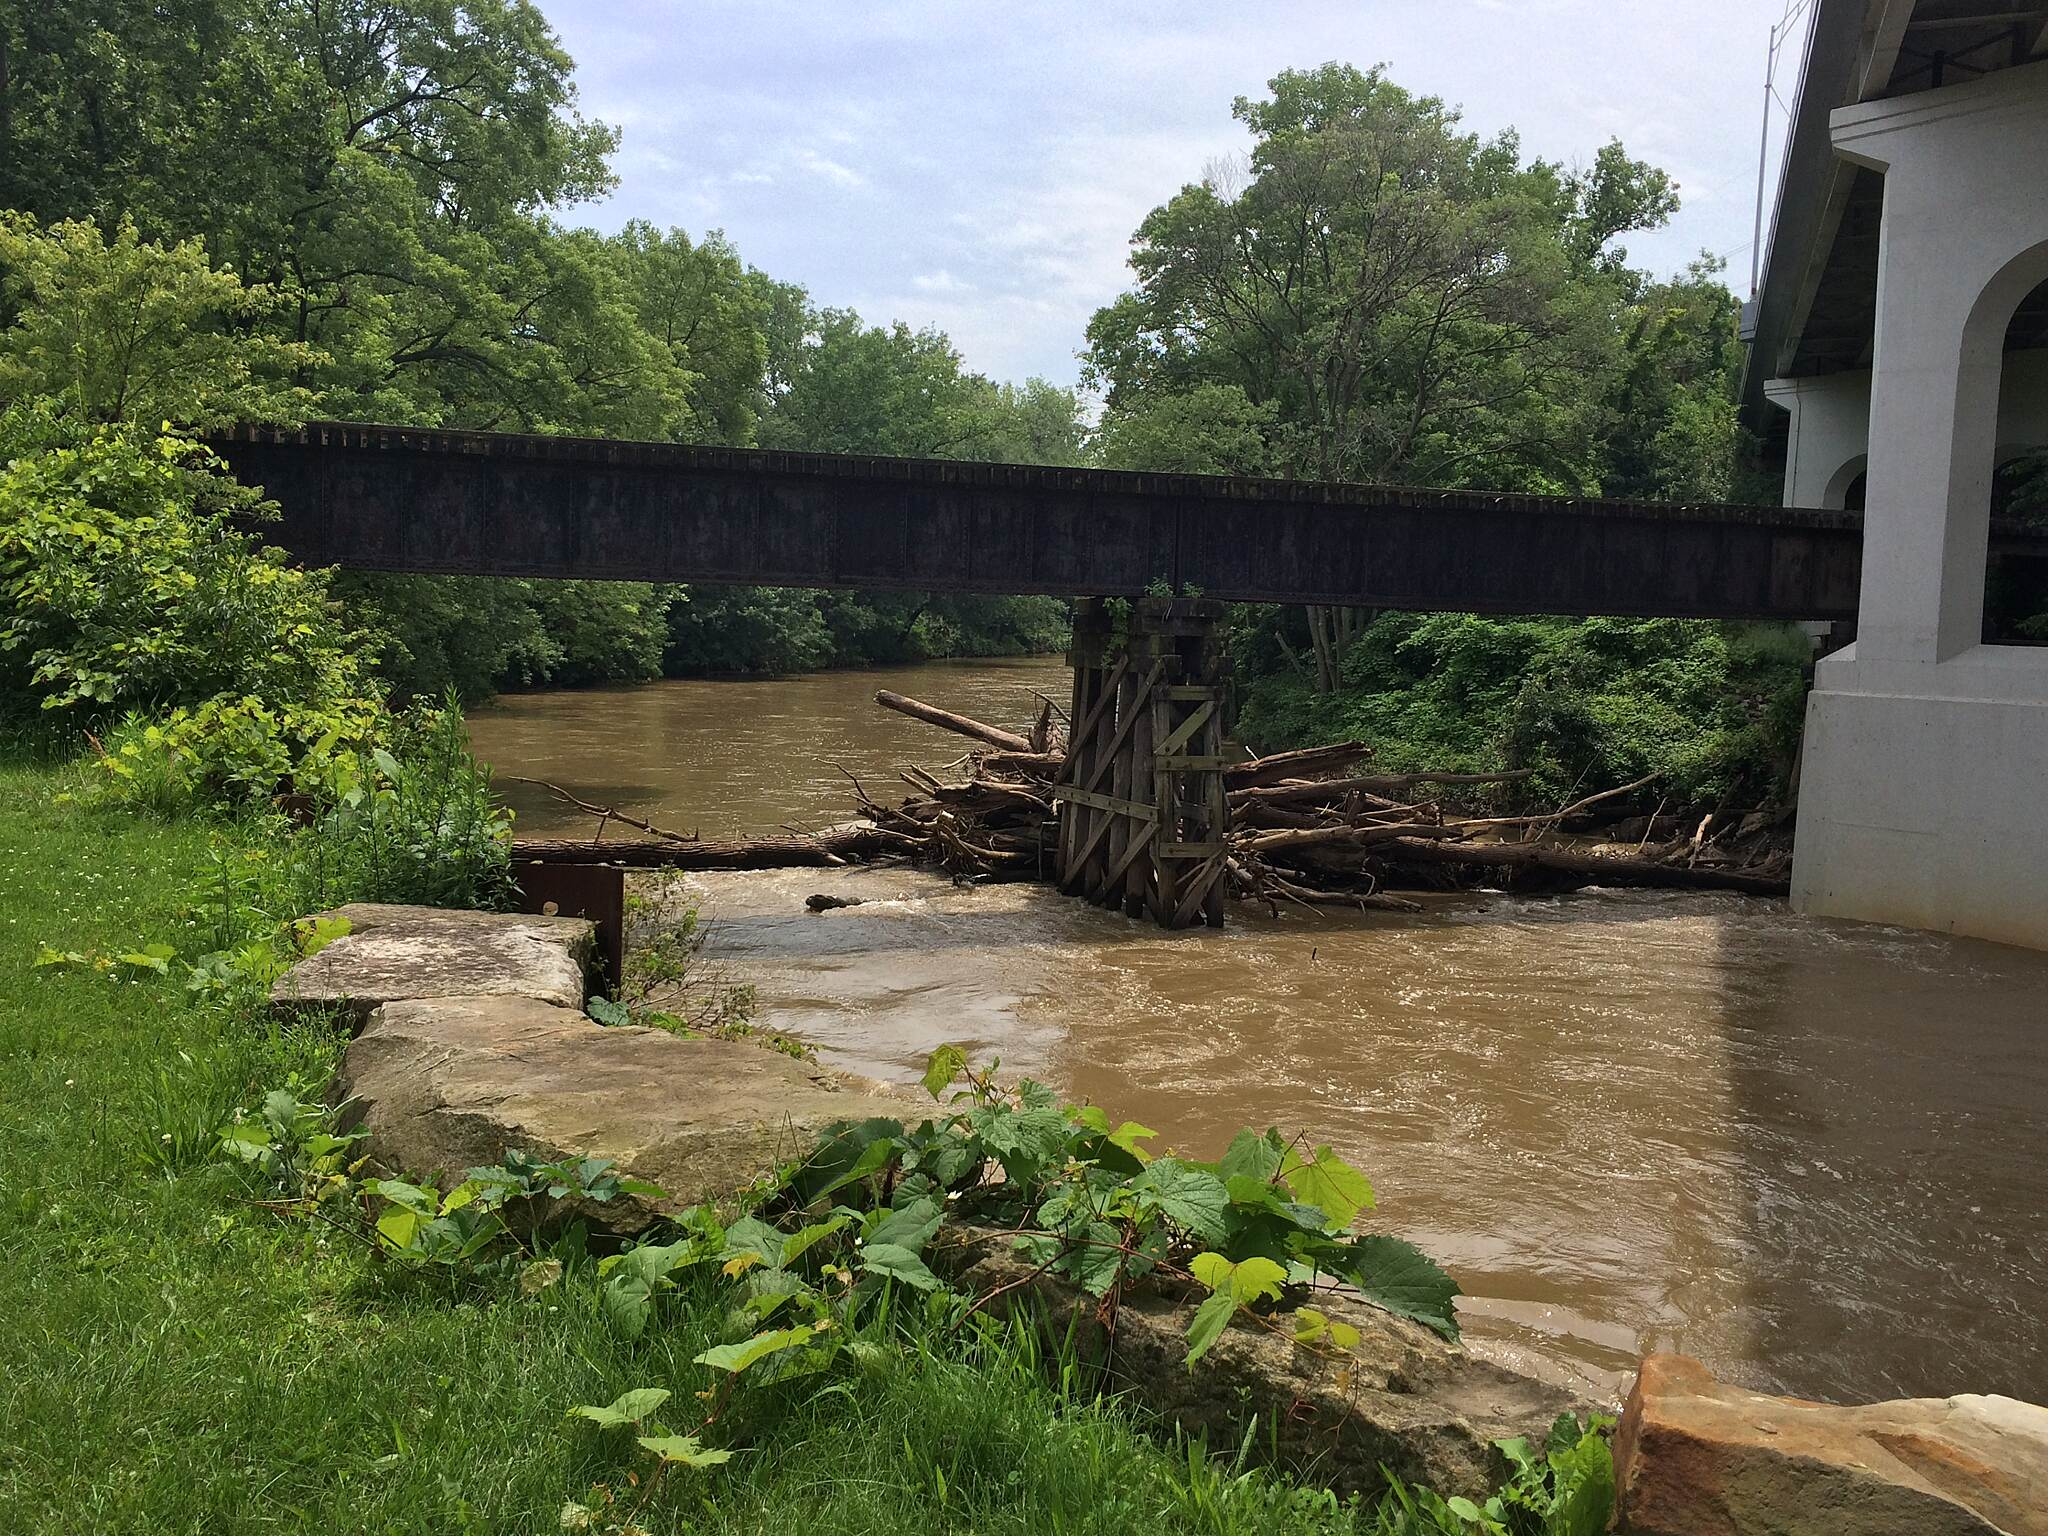 Ohio & Erie Canal Towpath Trail Log Jam Lots of debris getting caught after the storms in June/July 2015